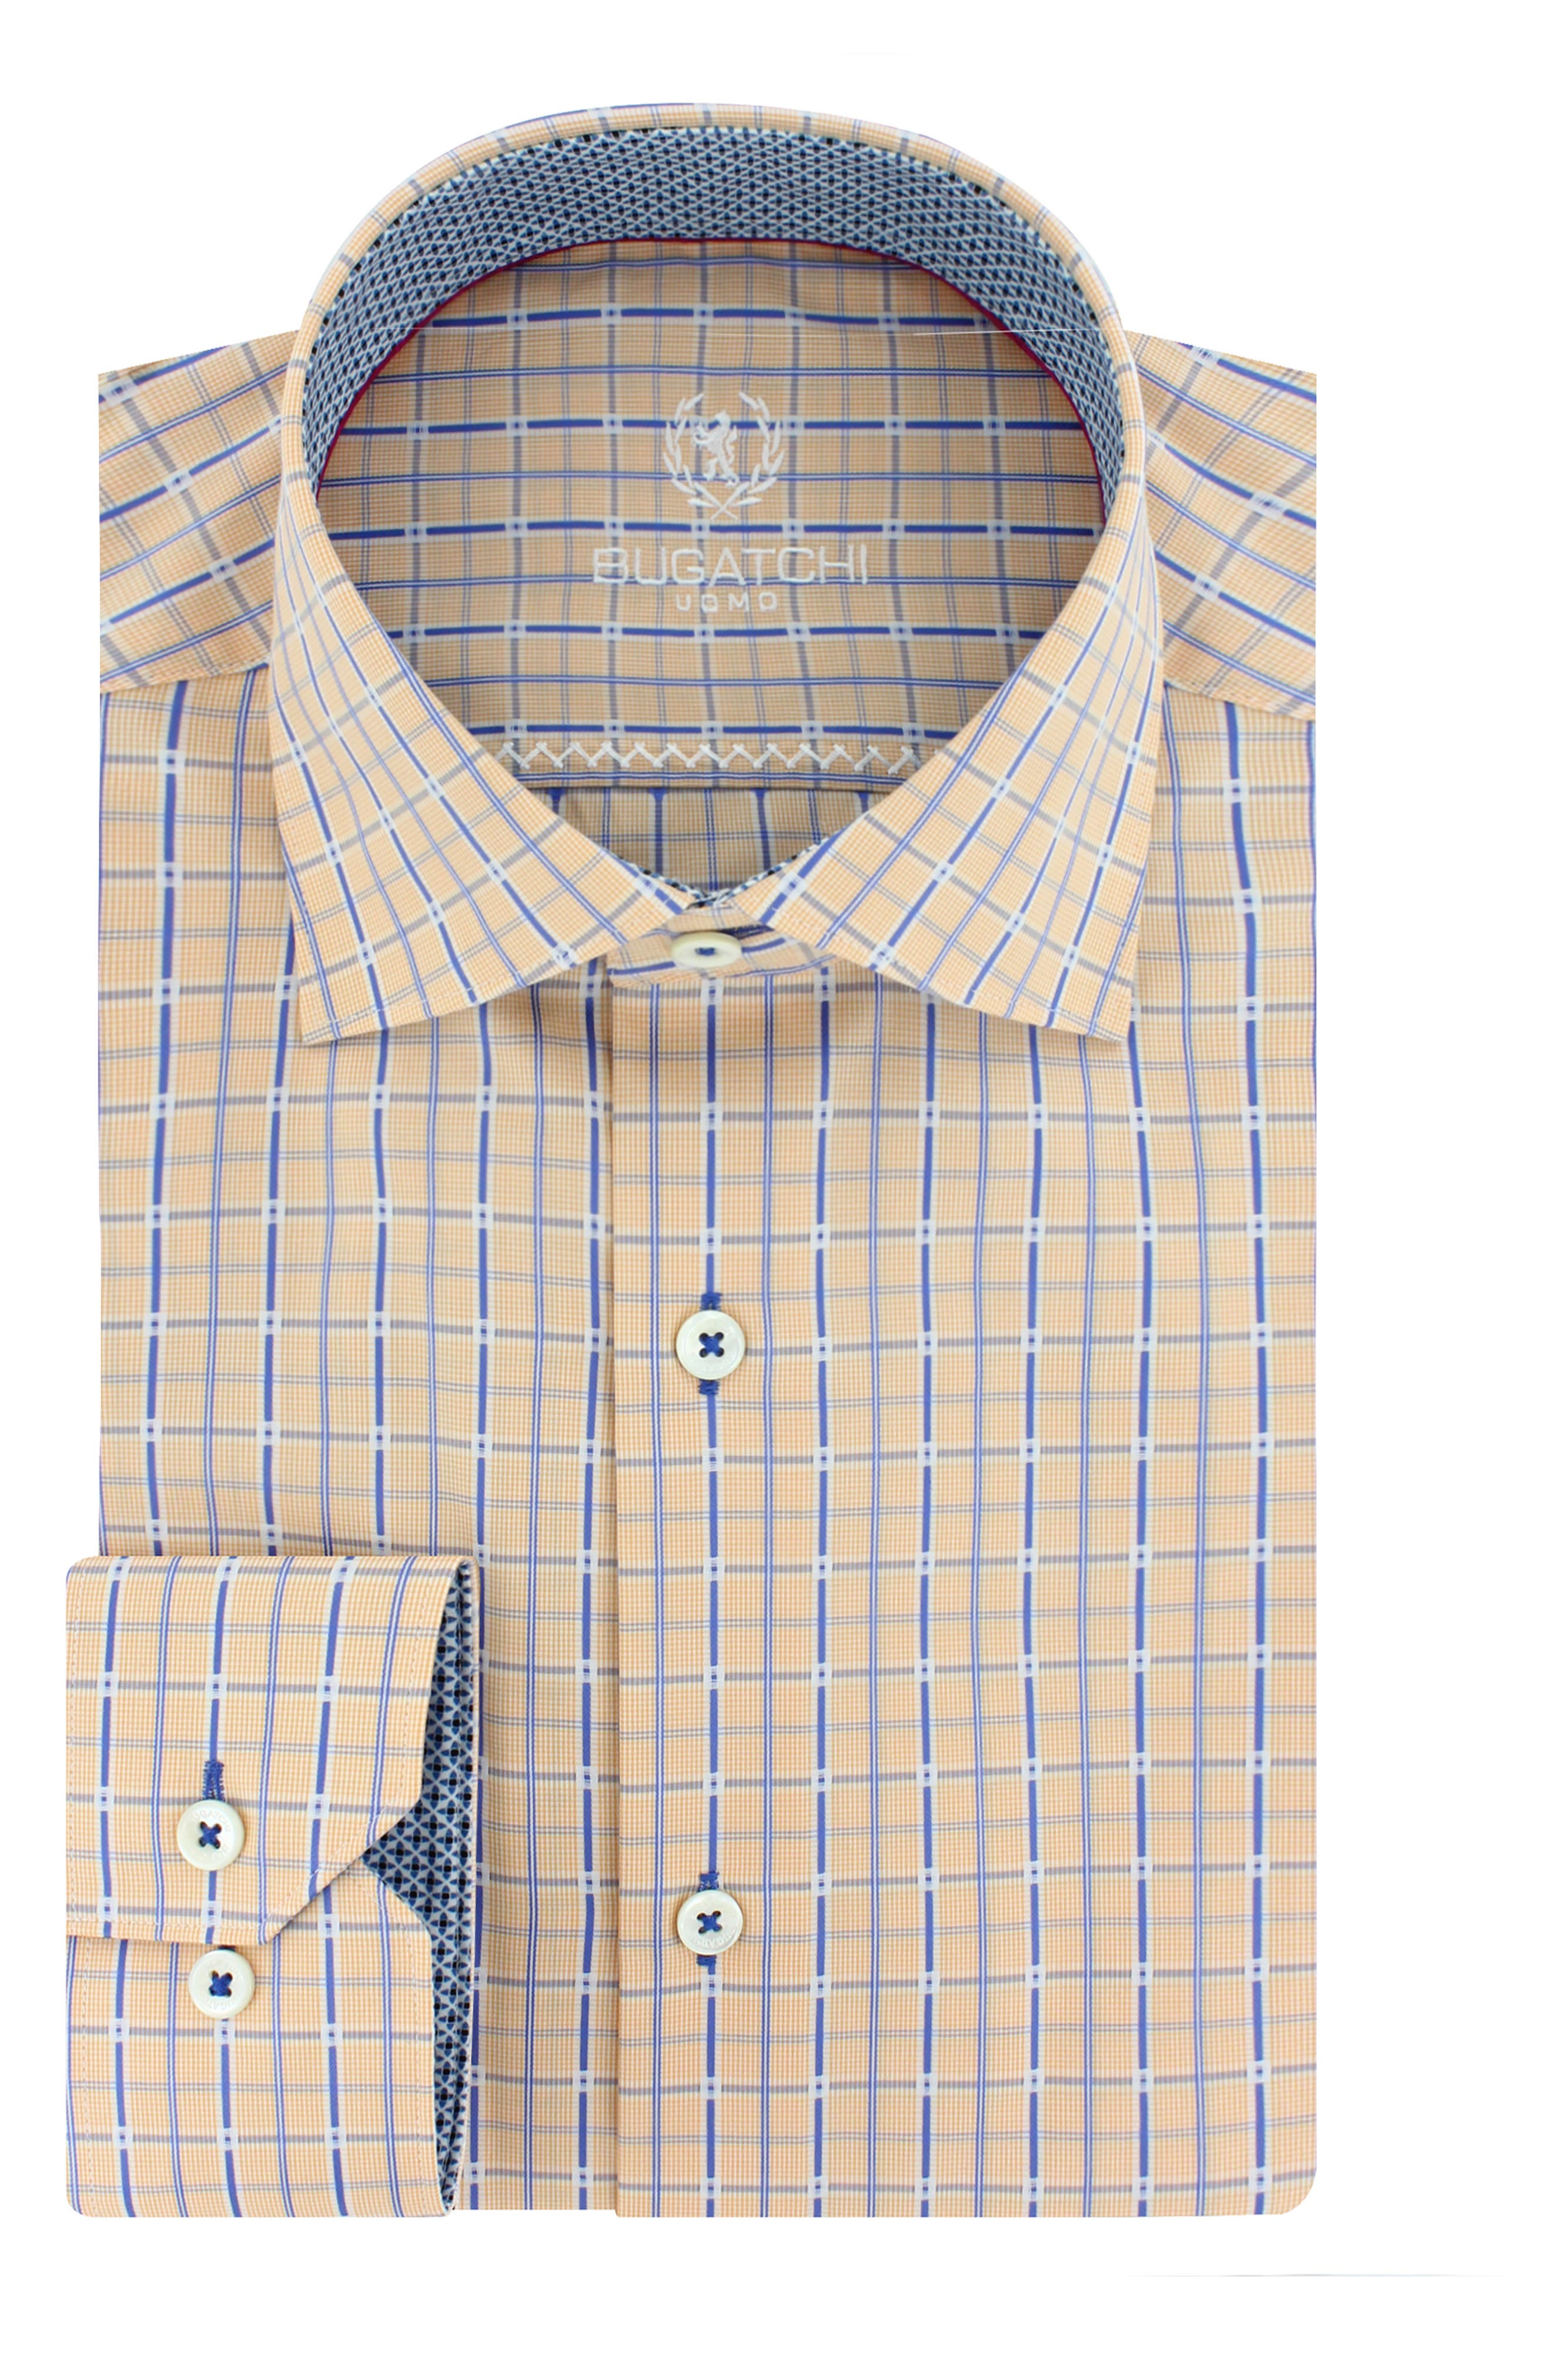 Bugatchi Trim Fit Grid Check Dress Shirt